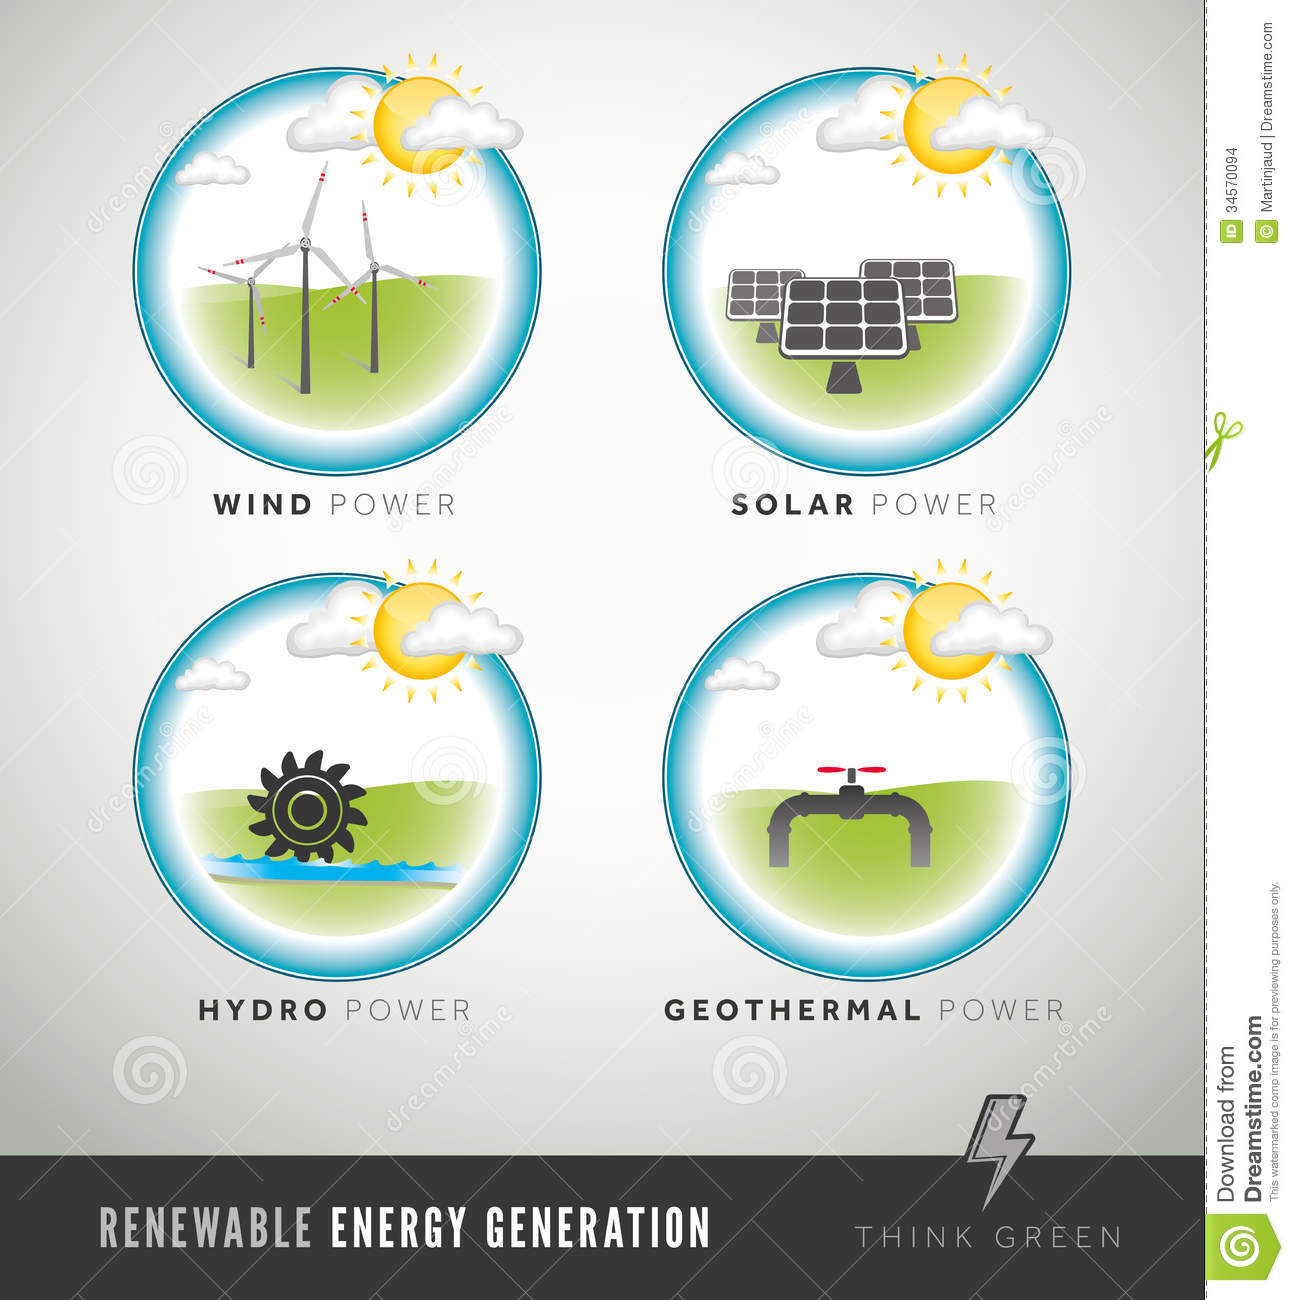 Renewable Energy Generation Icons And Symbols Stock Vector